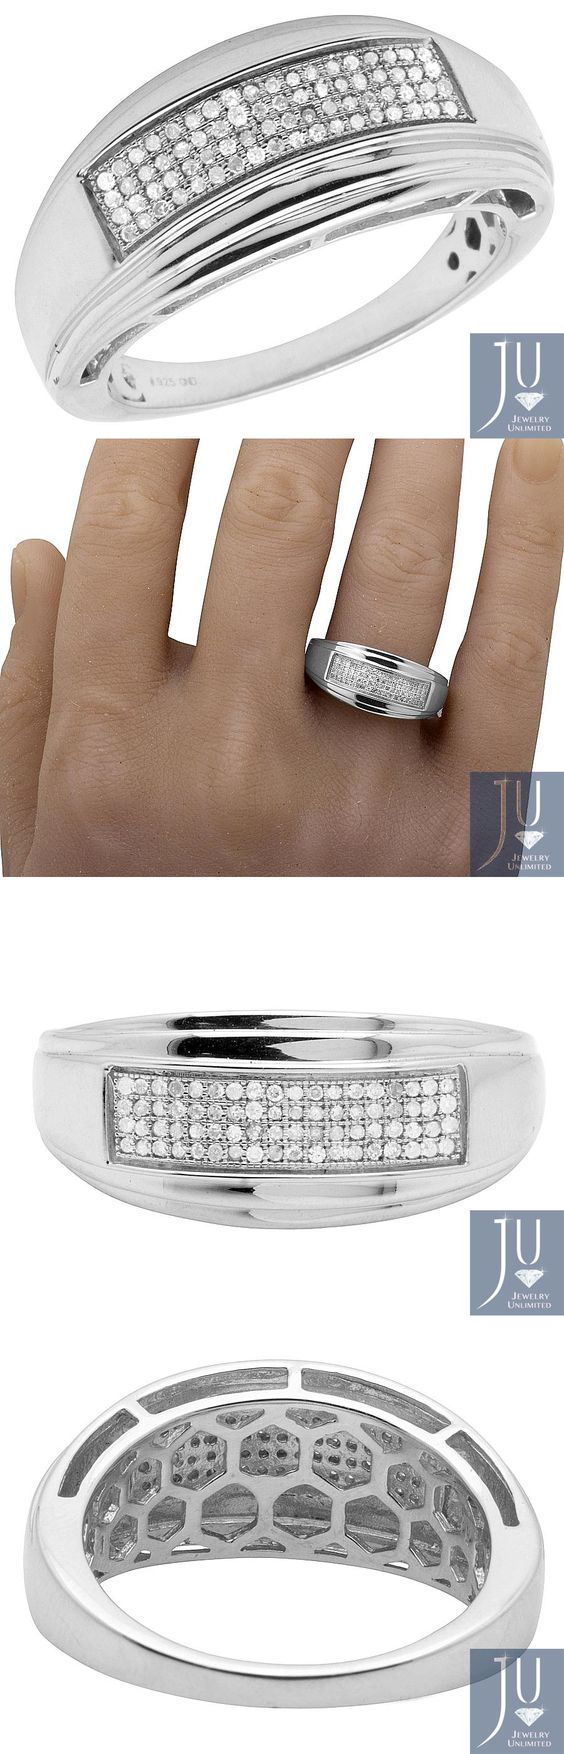 Rings 137856: Mens White Gold Sterling Silver Real Diamonds Wedding Band  Ring 020ct 10mm